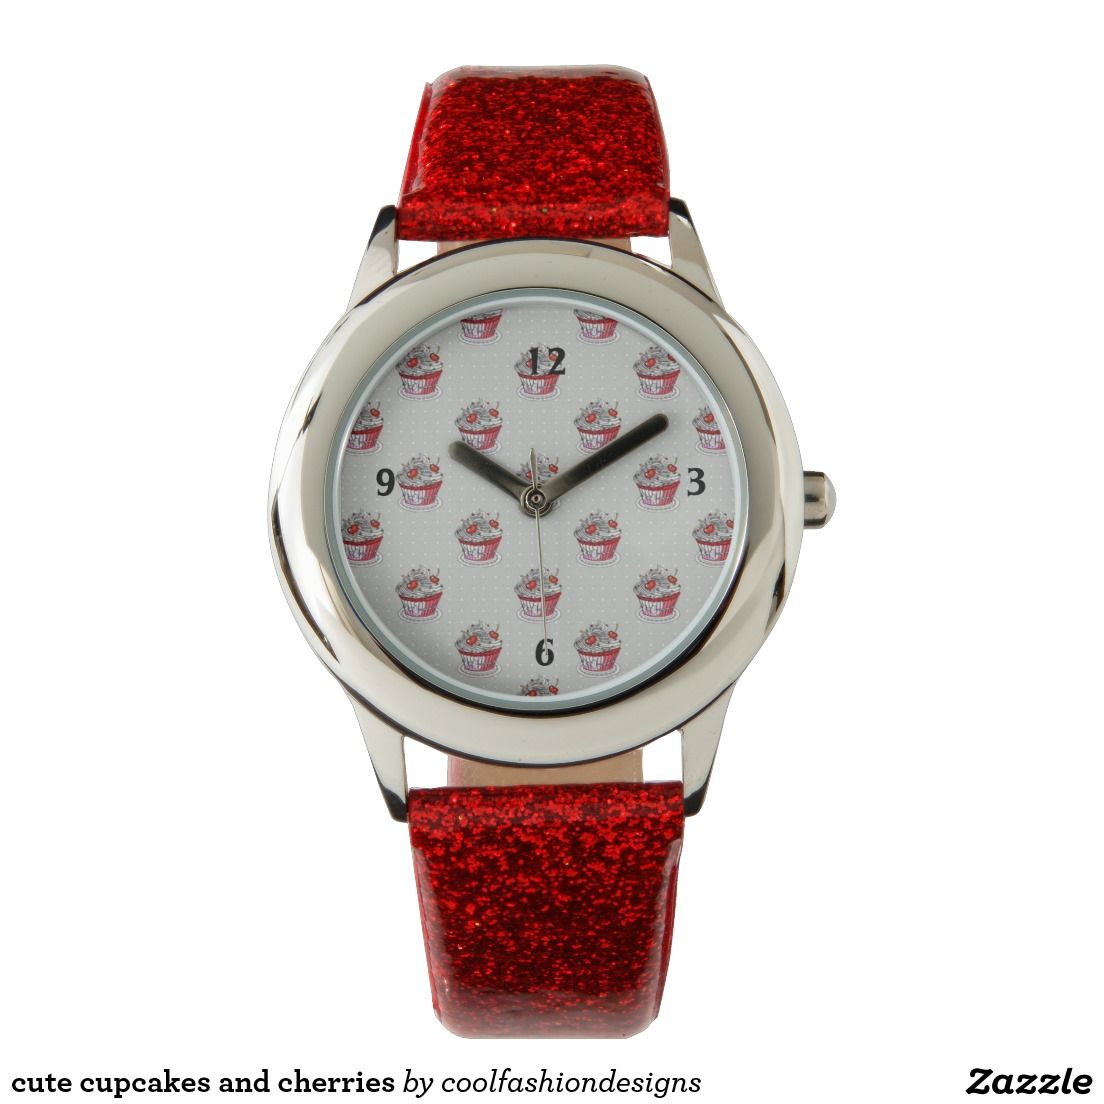 cute cupcakes and cherries wristwatch